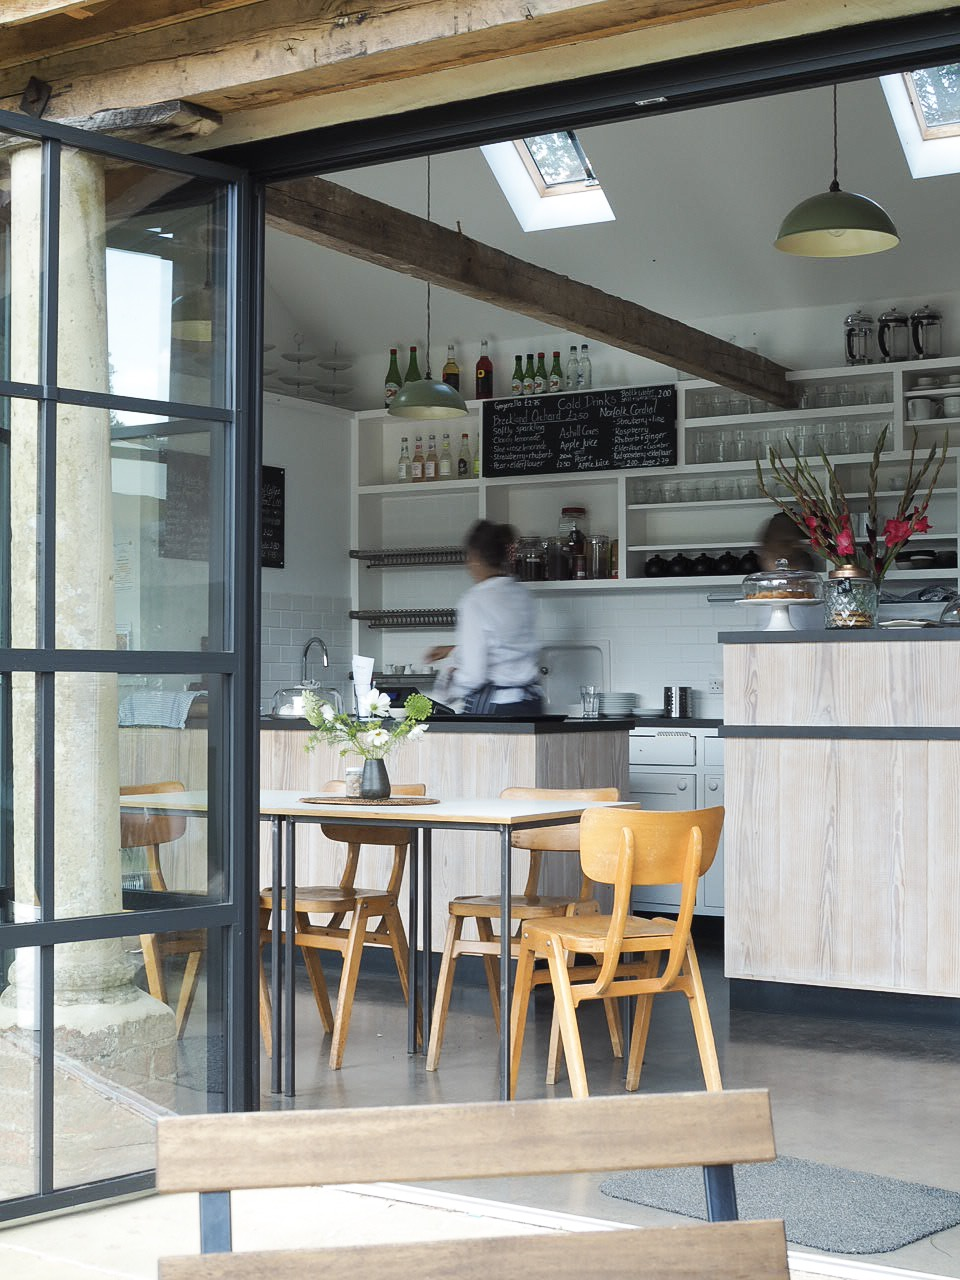 The barn cafe at west acre gardens